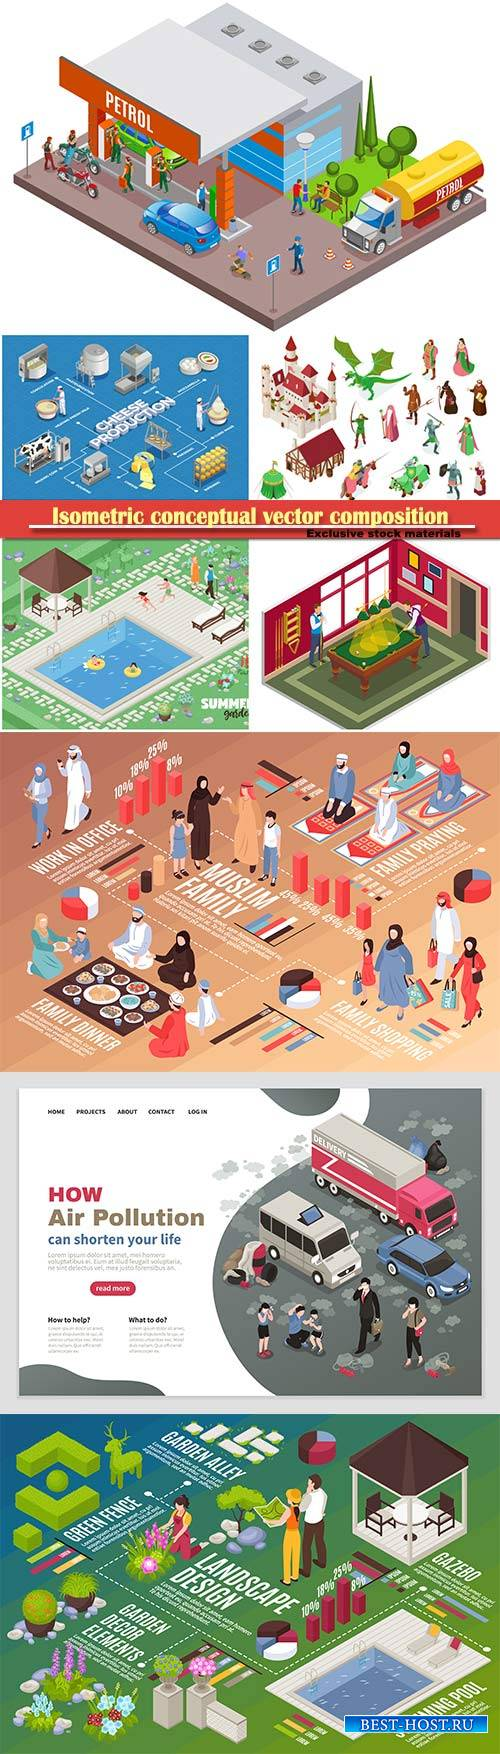 Isometric conceptual vector composition, infographics template # 66